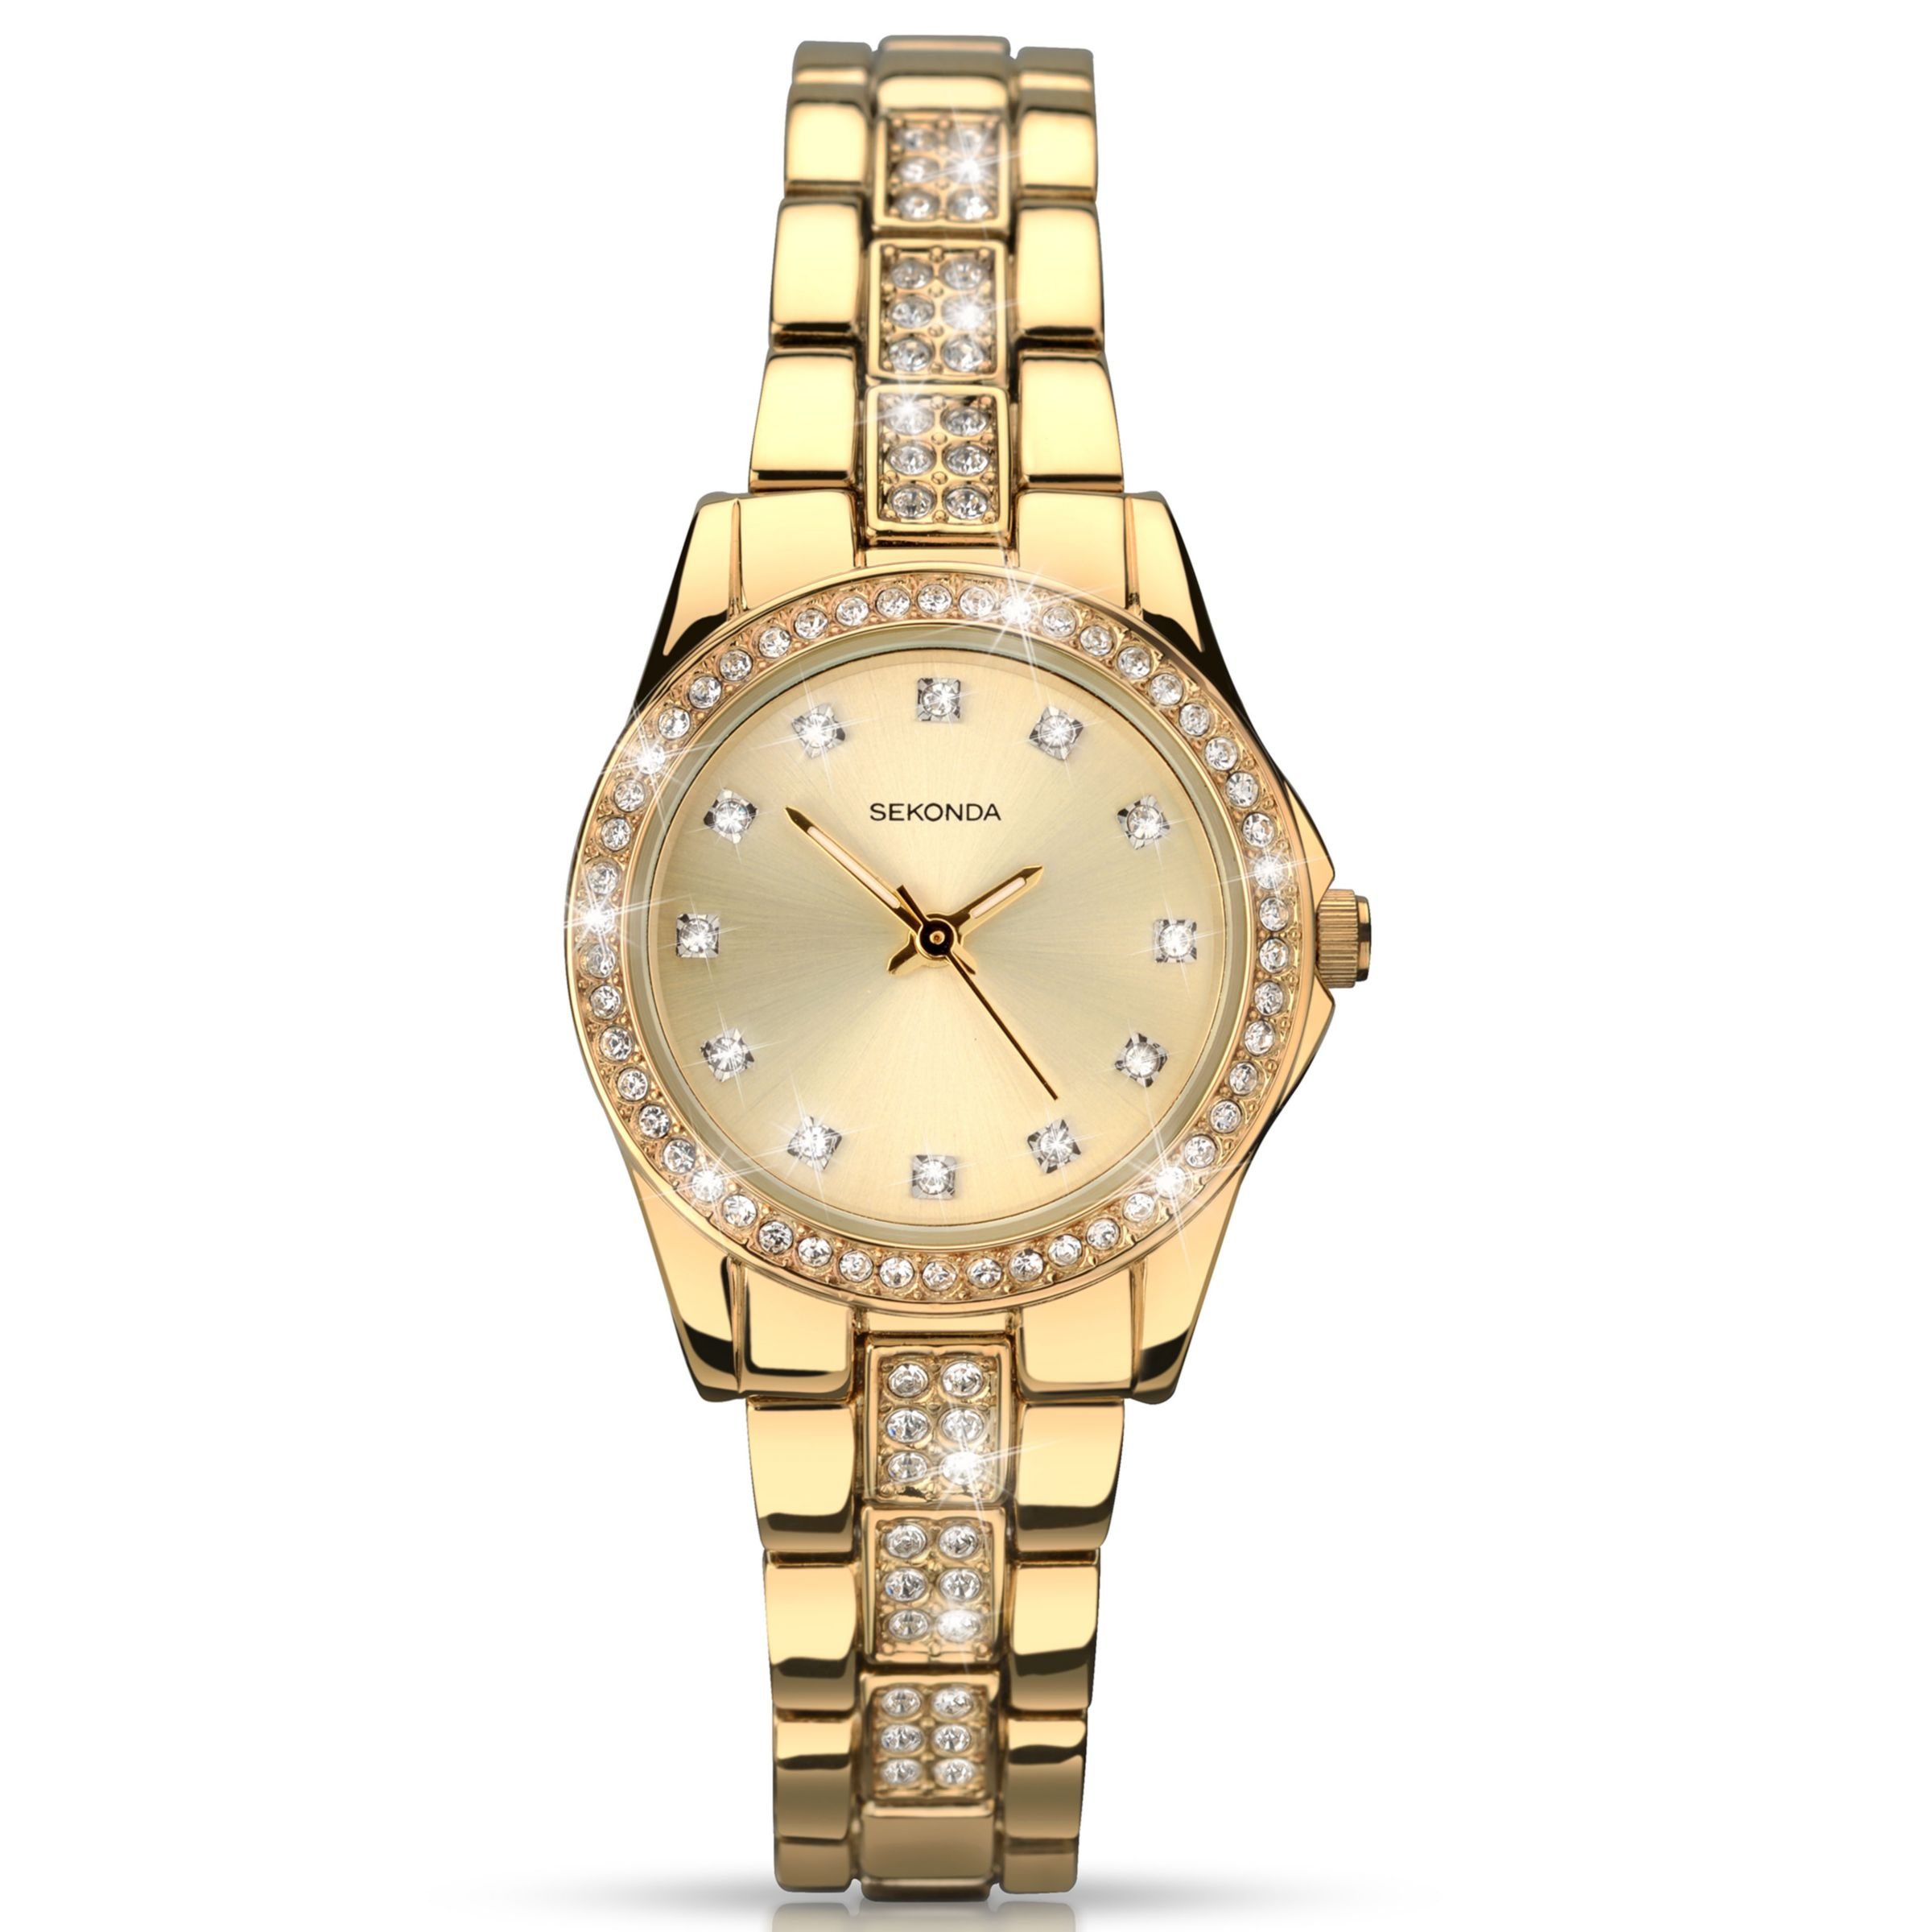 Sekonda Sekonda 2020.27 Women's Diamante Bracelet Strap Watch, Gold